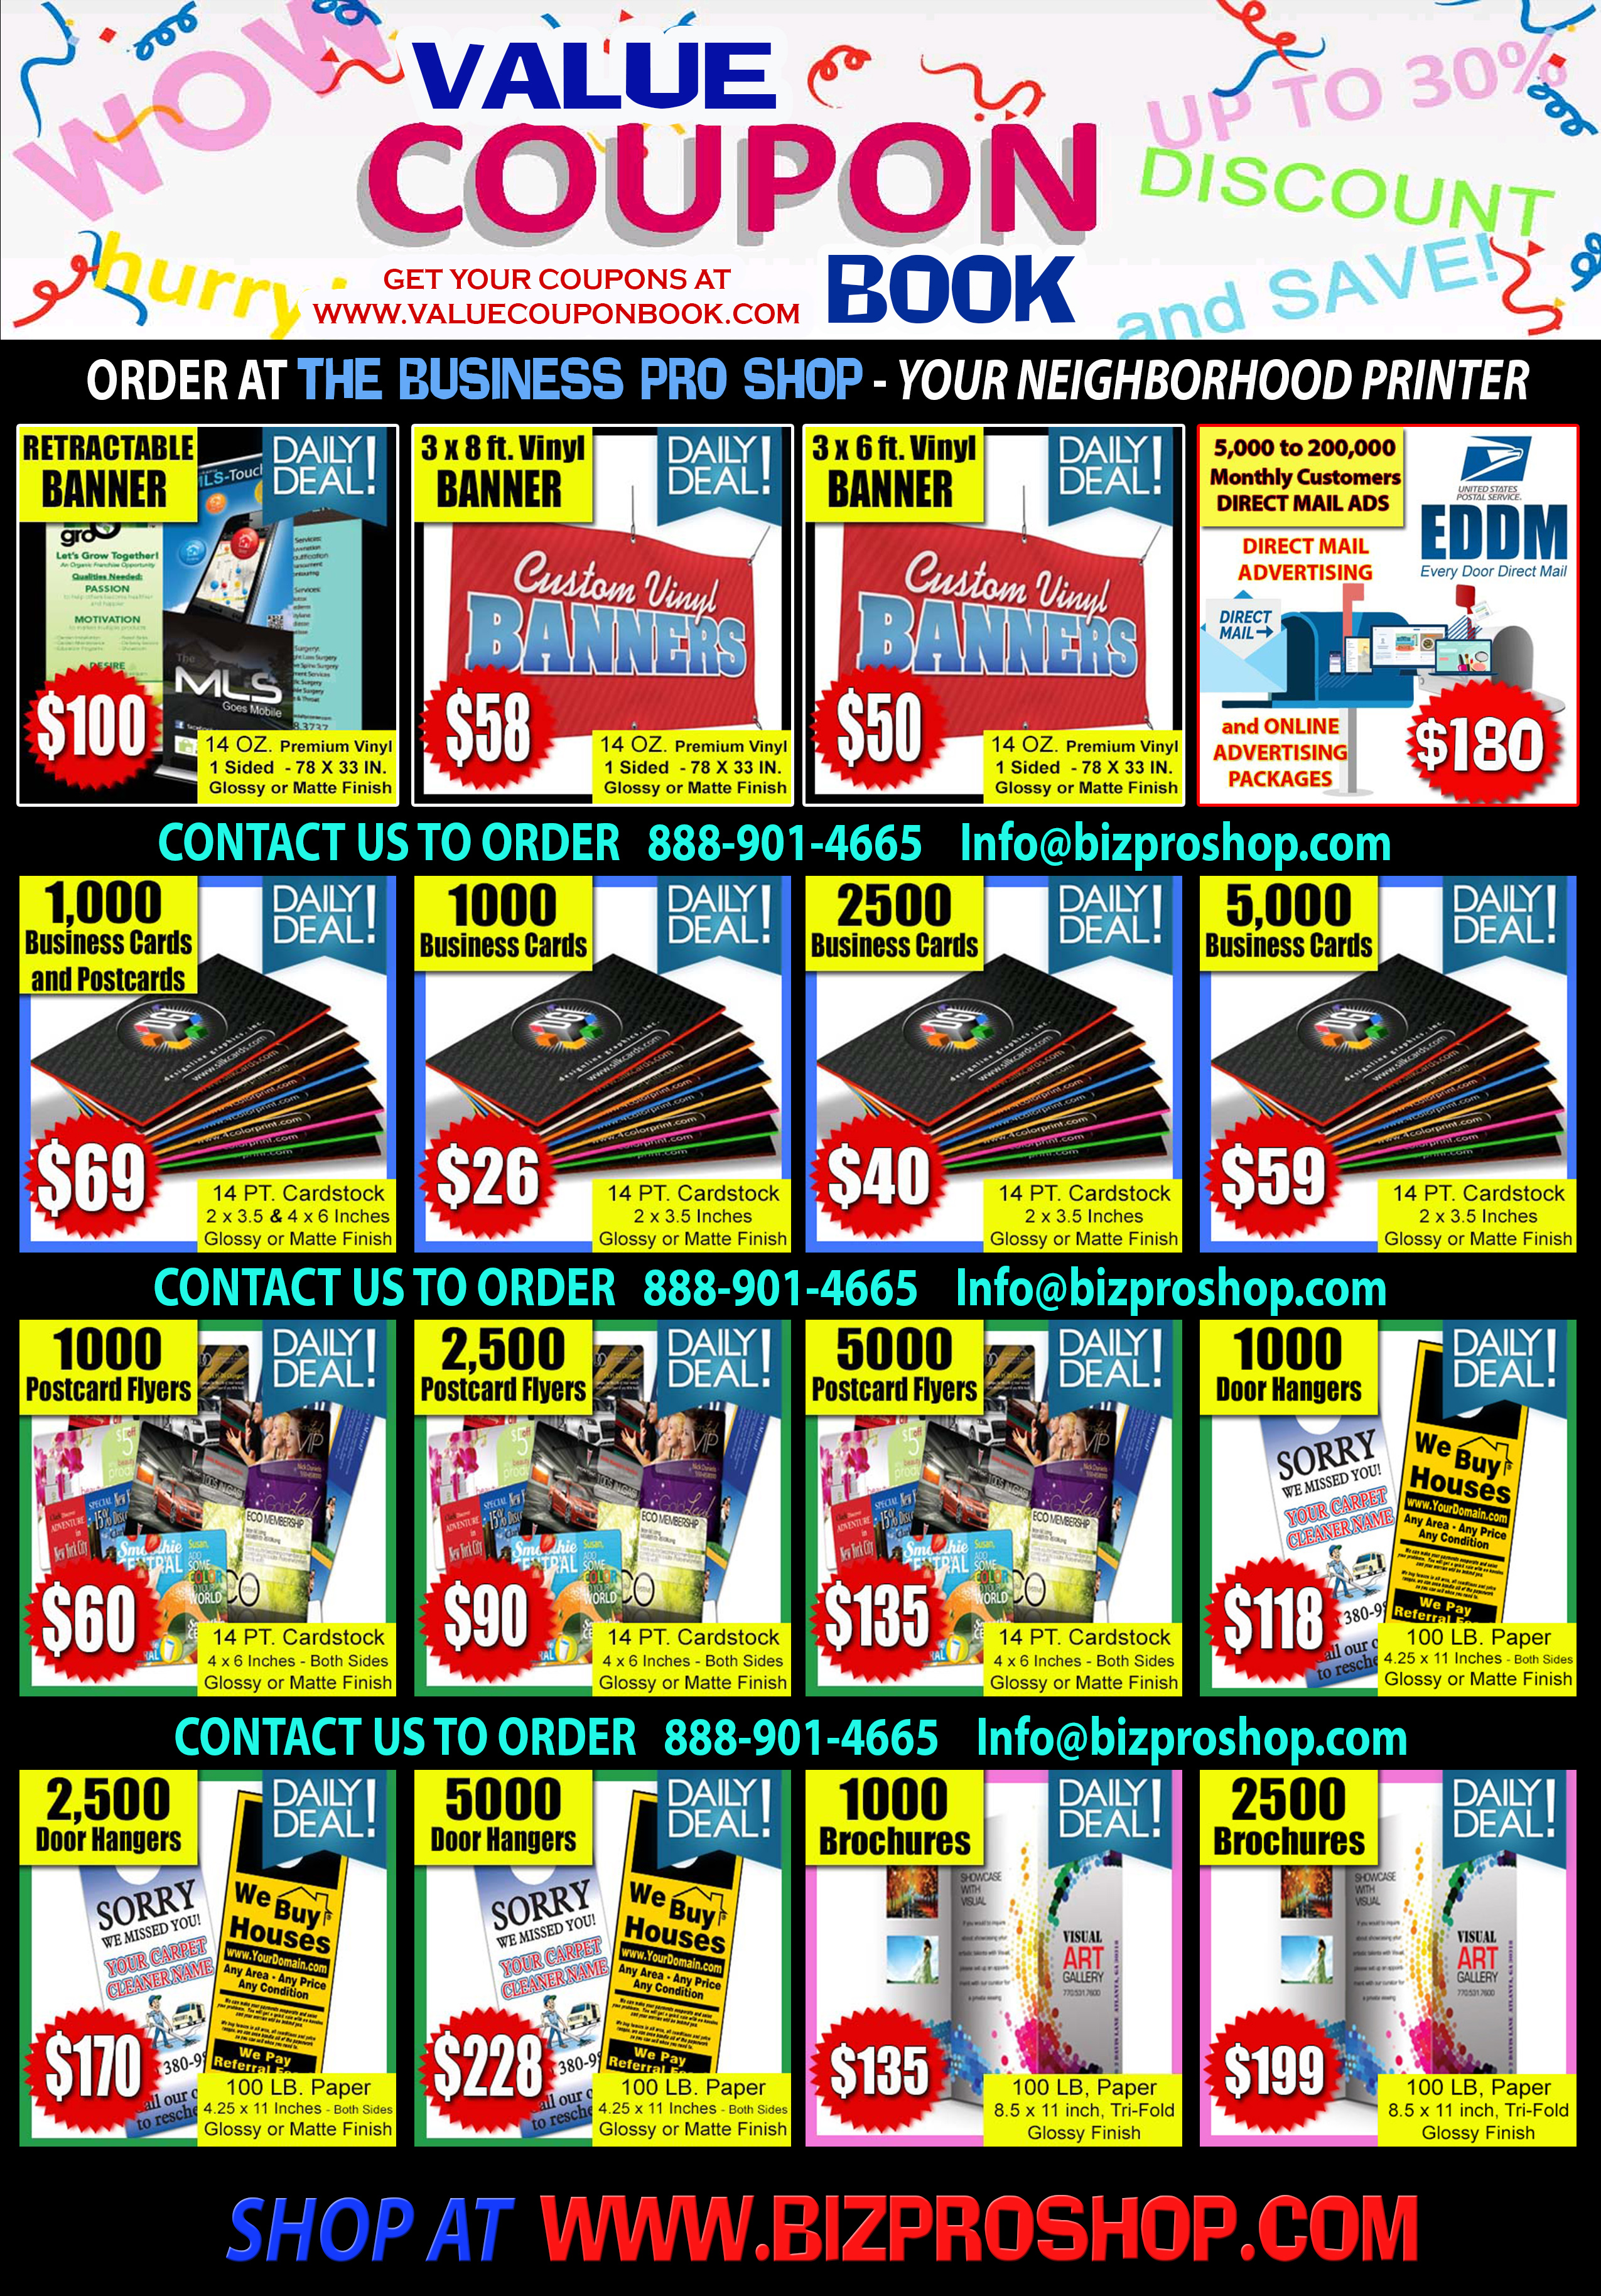 Get New Customers with Your Coupon | Advertise Today for 9.99